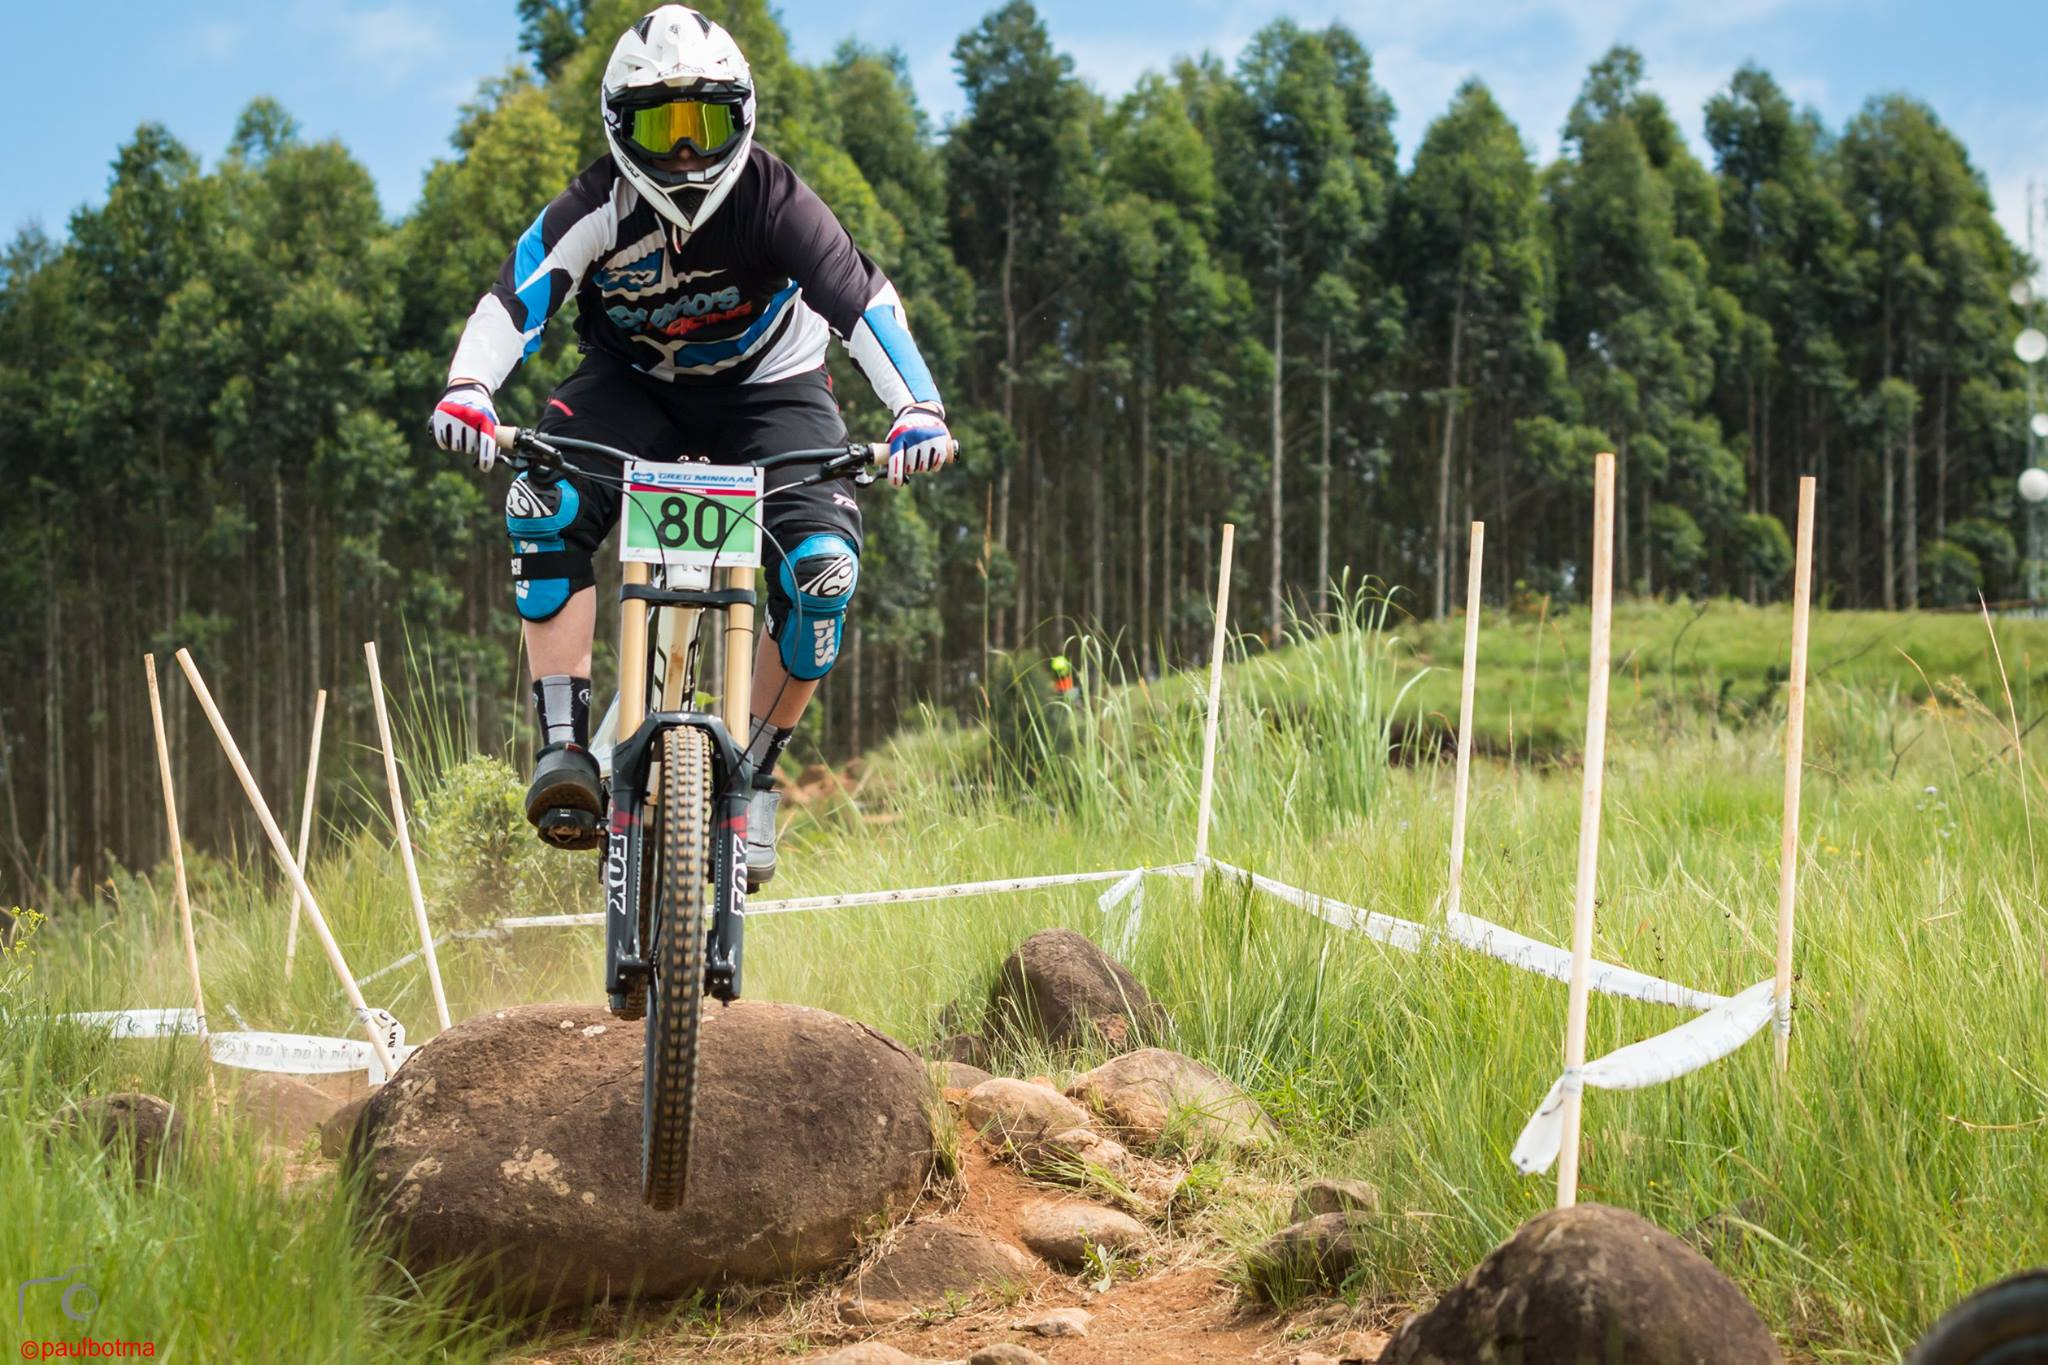 Junior Men's Log leader, Christopher Philogene is looking to hold onto the top spot in his category at the third round of the 2016 KZNMTB Provincial Downhill Series – presented by Greg Minnaar Cycles, on Sunday 22 May, which doubles as the fourth round of the 2016 SA National DHI Cup Series. Photo: Paul Botma